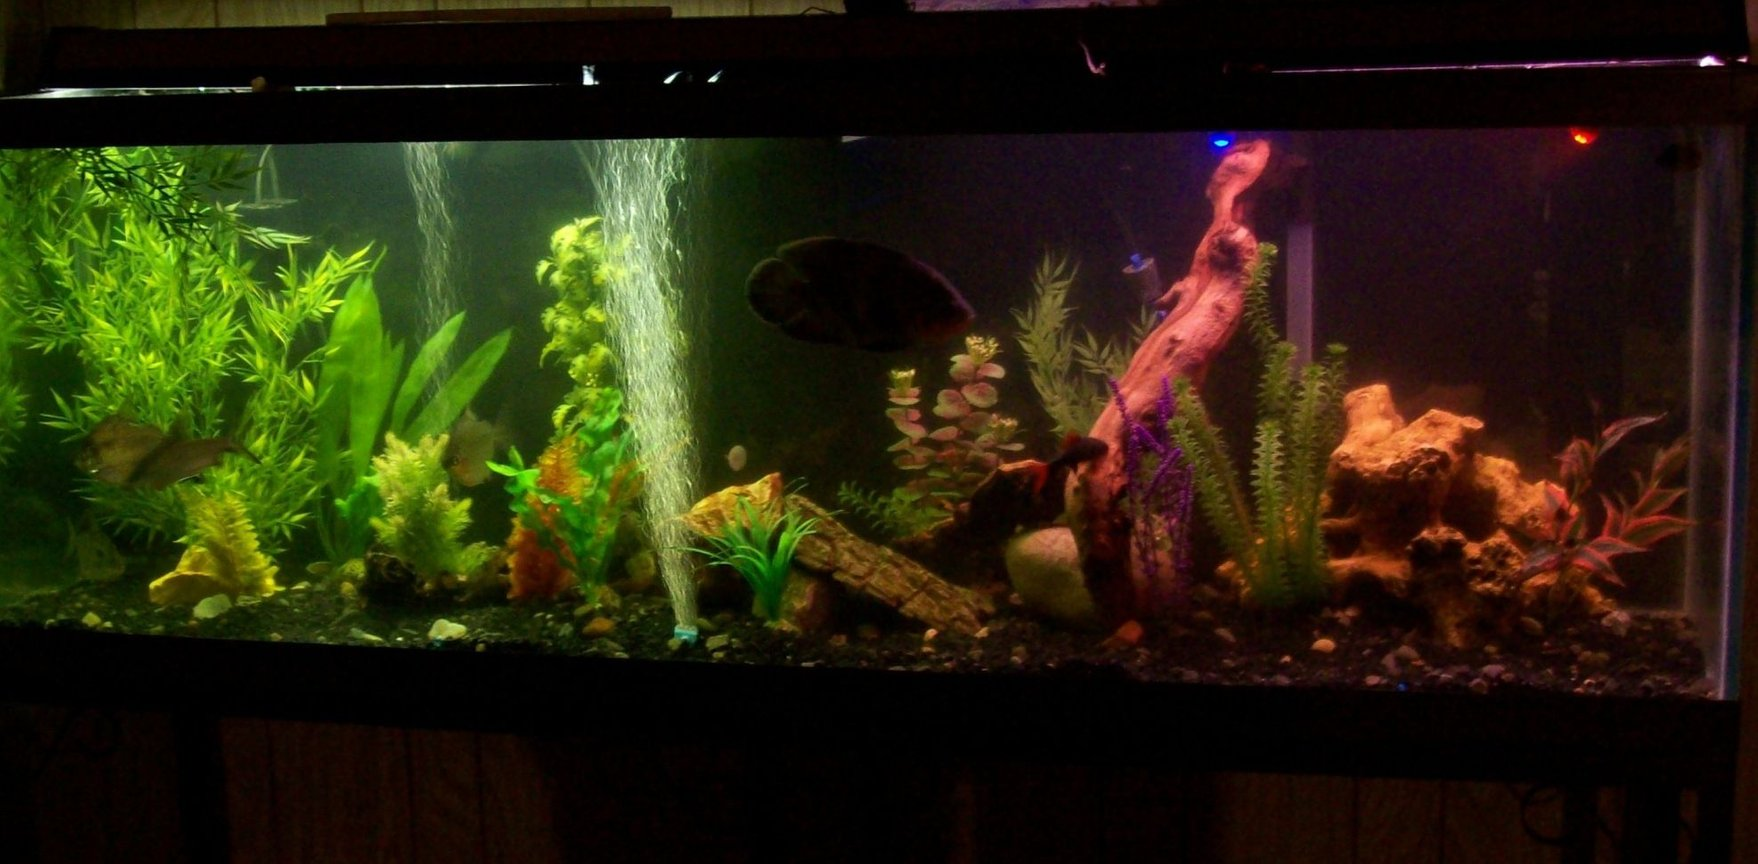 "55 gallons freshwater fish tank (mostly fish and non-living decorations) - magnum 350 and Ehiem ecco canister filters. My lighting is either made up of 5 Submersible LED lights 2 green, 2 blue, and one red in the volcano. Or two 20"" double bulb plant/aquarium light w/ or w/o already mentioned submerged LEDs."